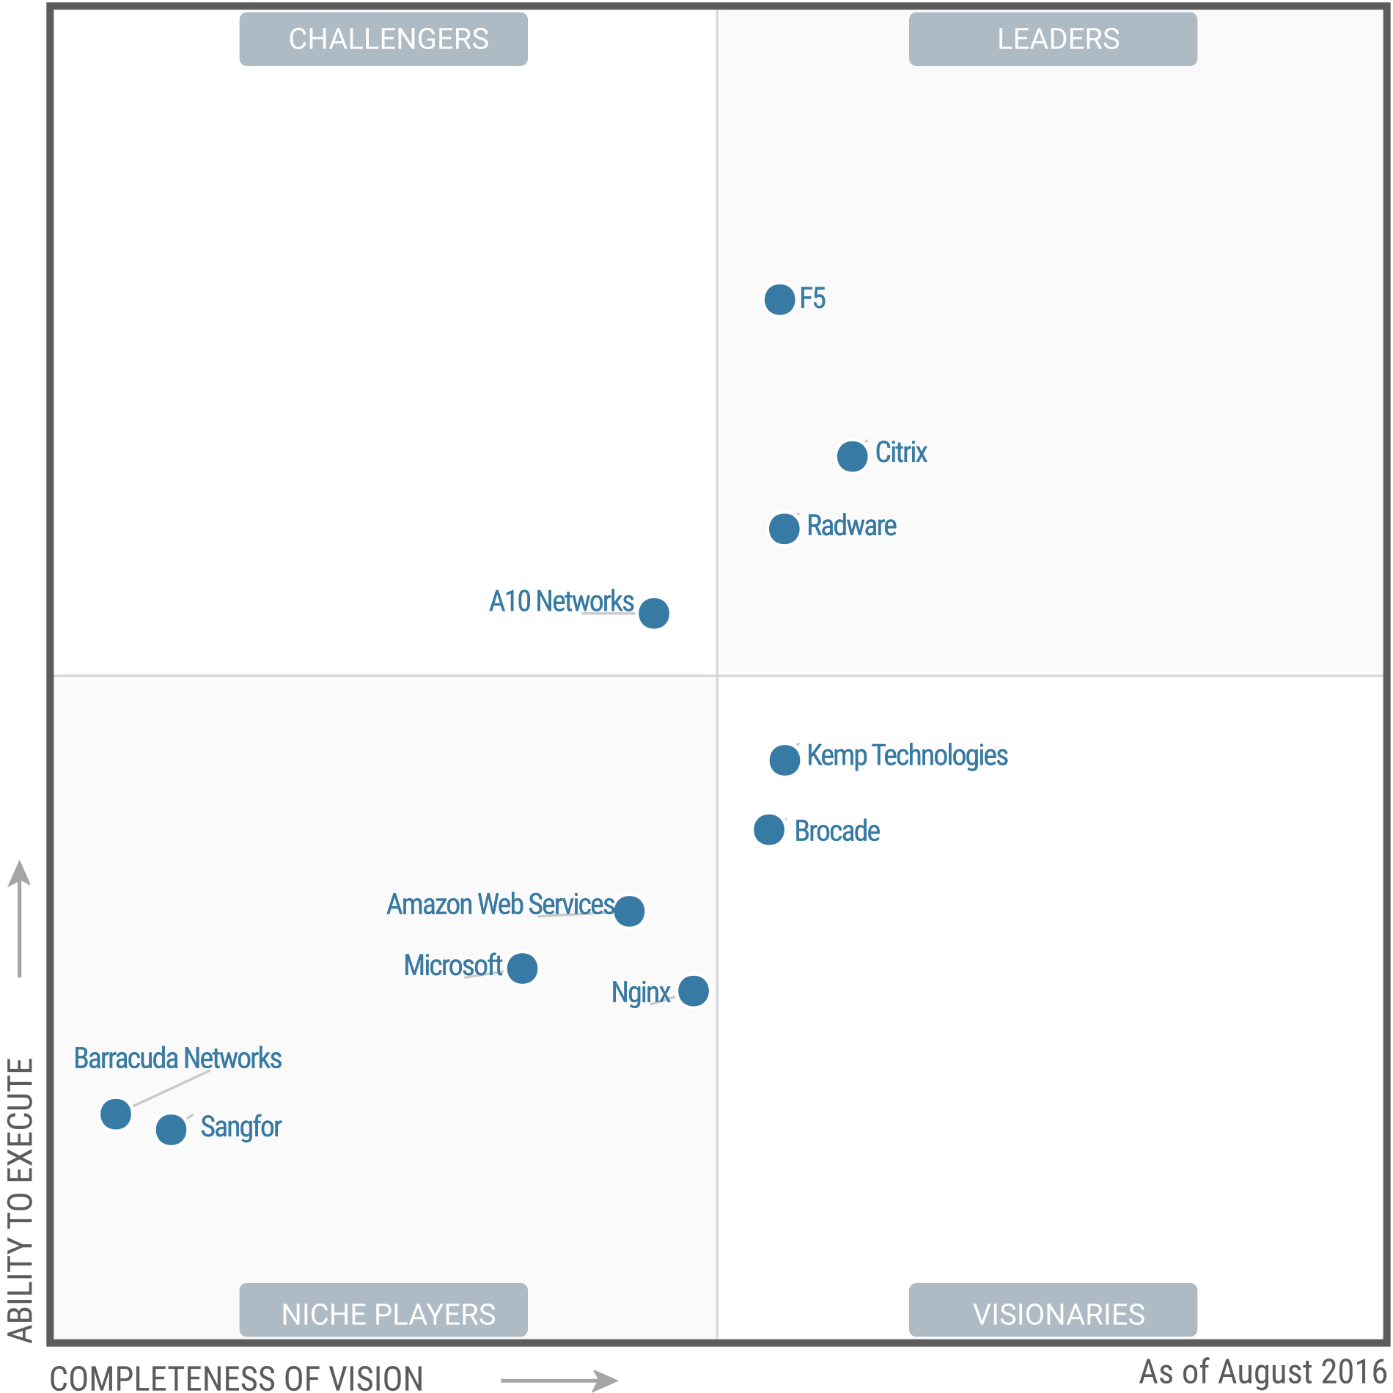 Gartner Magic Quadrant for Application Delivery Controllers 2016